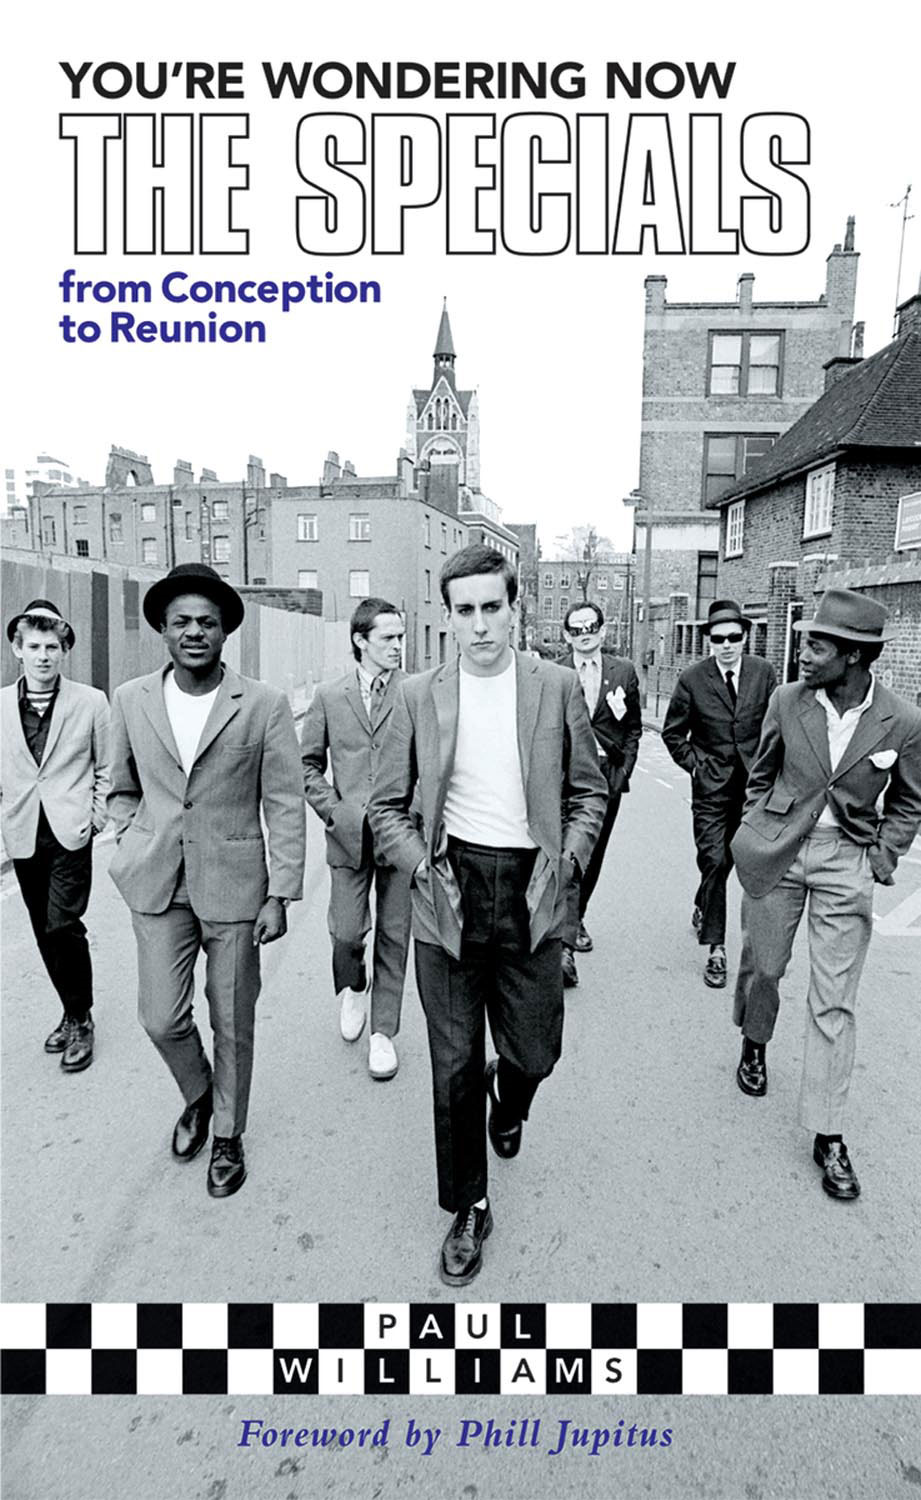 You're Wondering Now: The Specials from Conception to Reunion